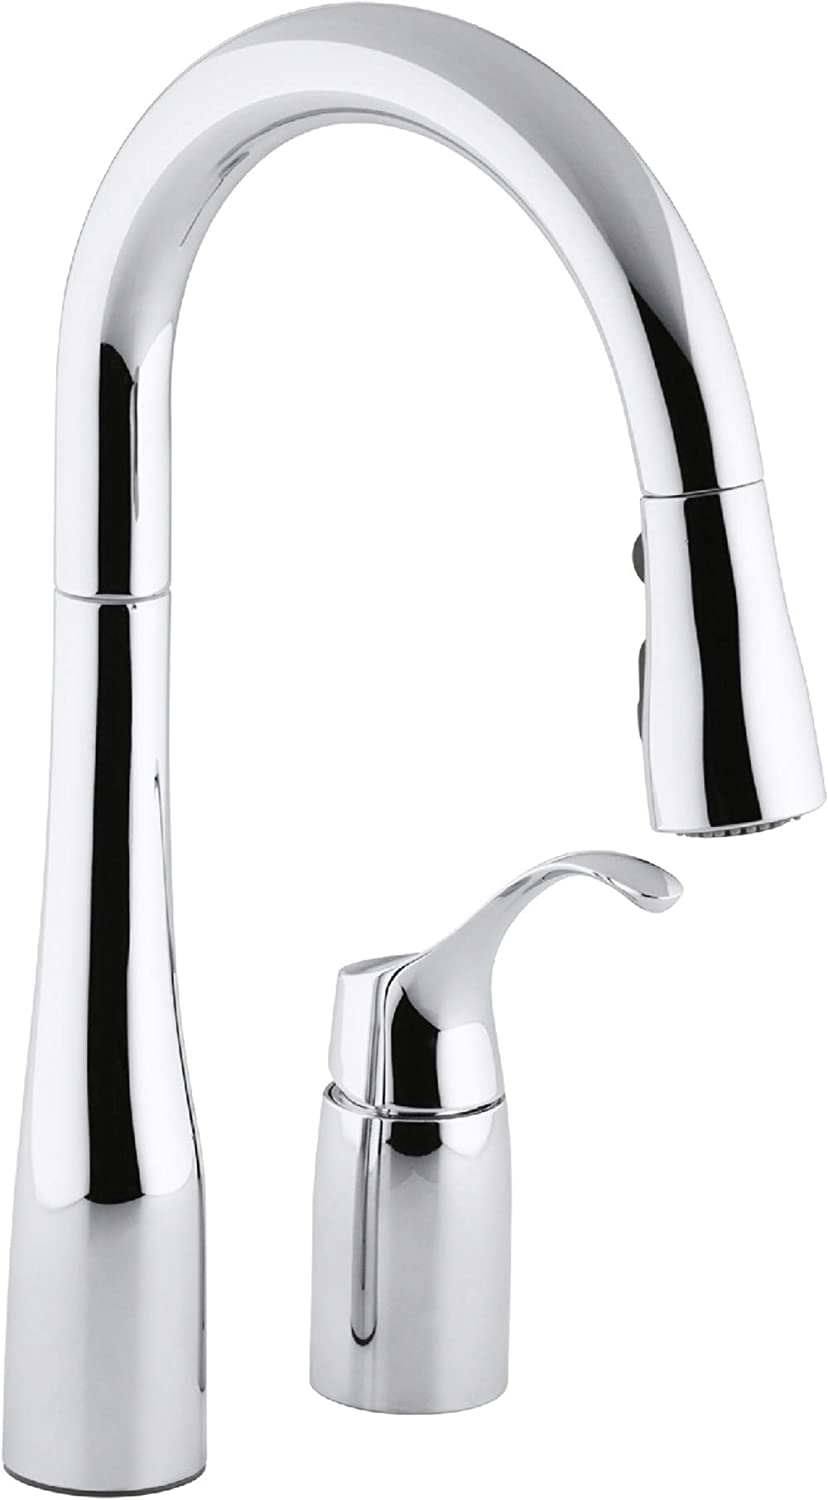 KOHLER K-649-CP Simplice Pull-Down Secondary Sink Faucet, Polished Chrome